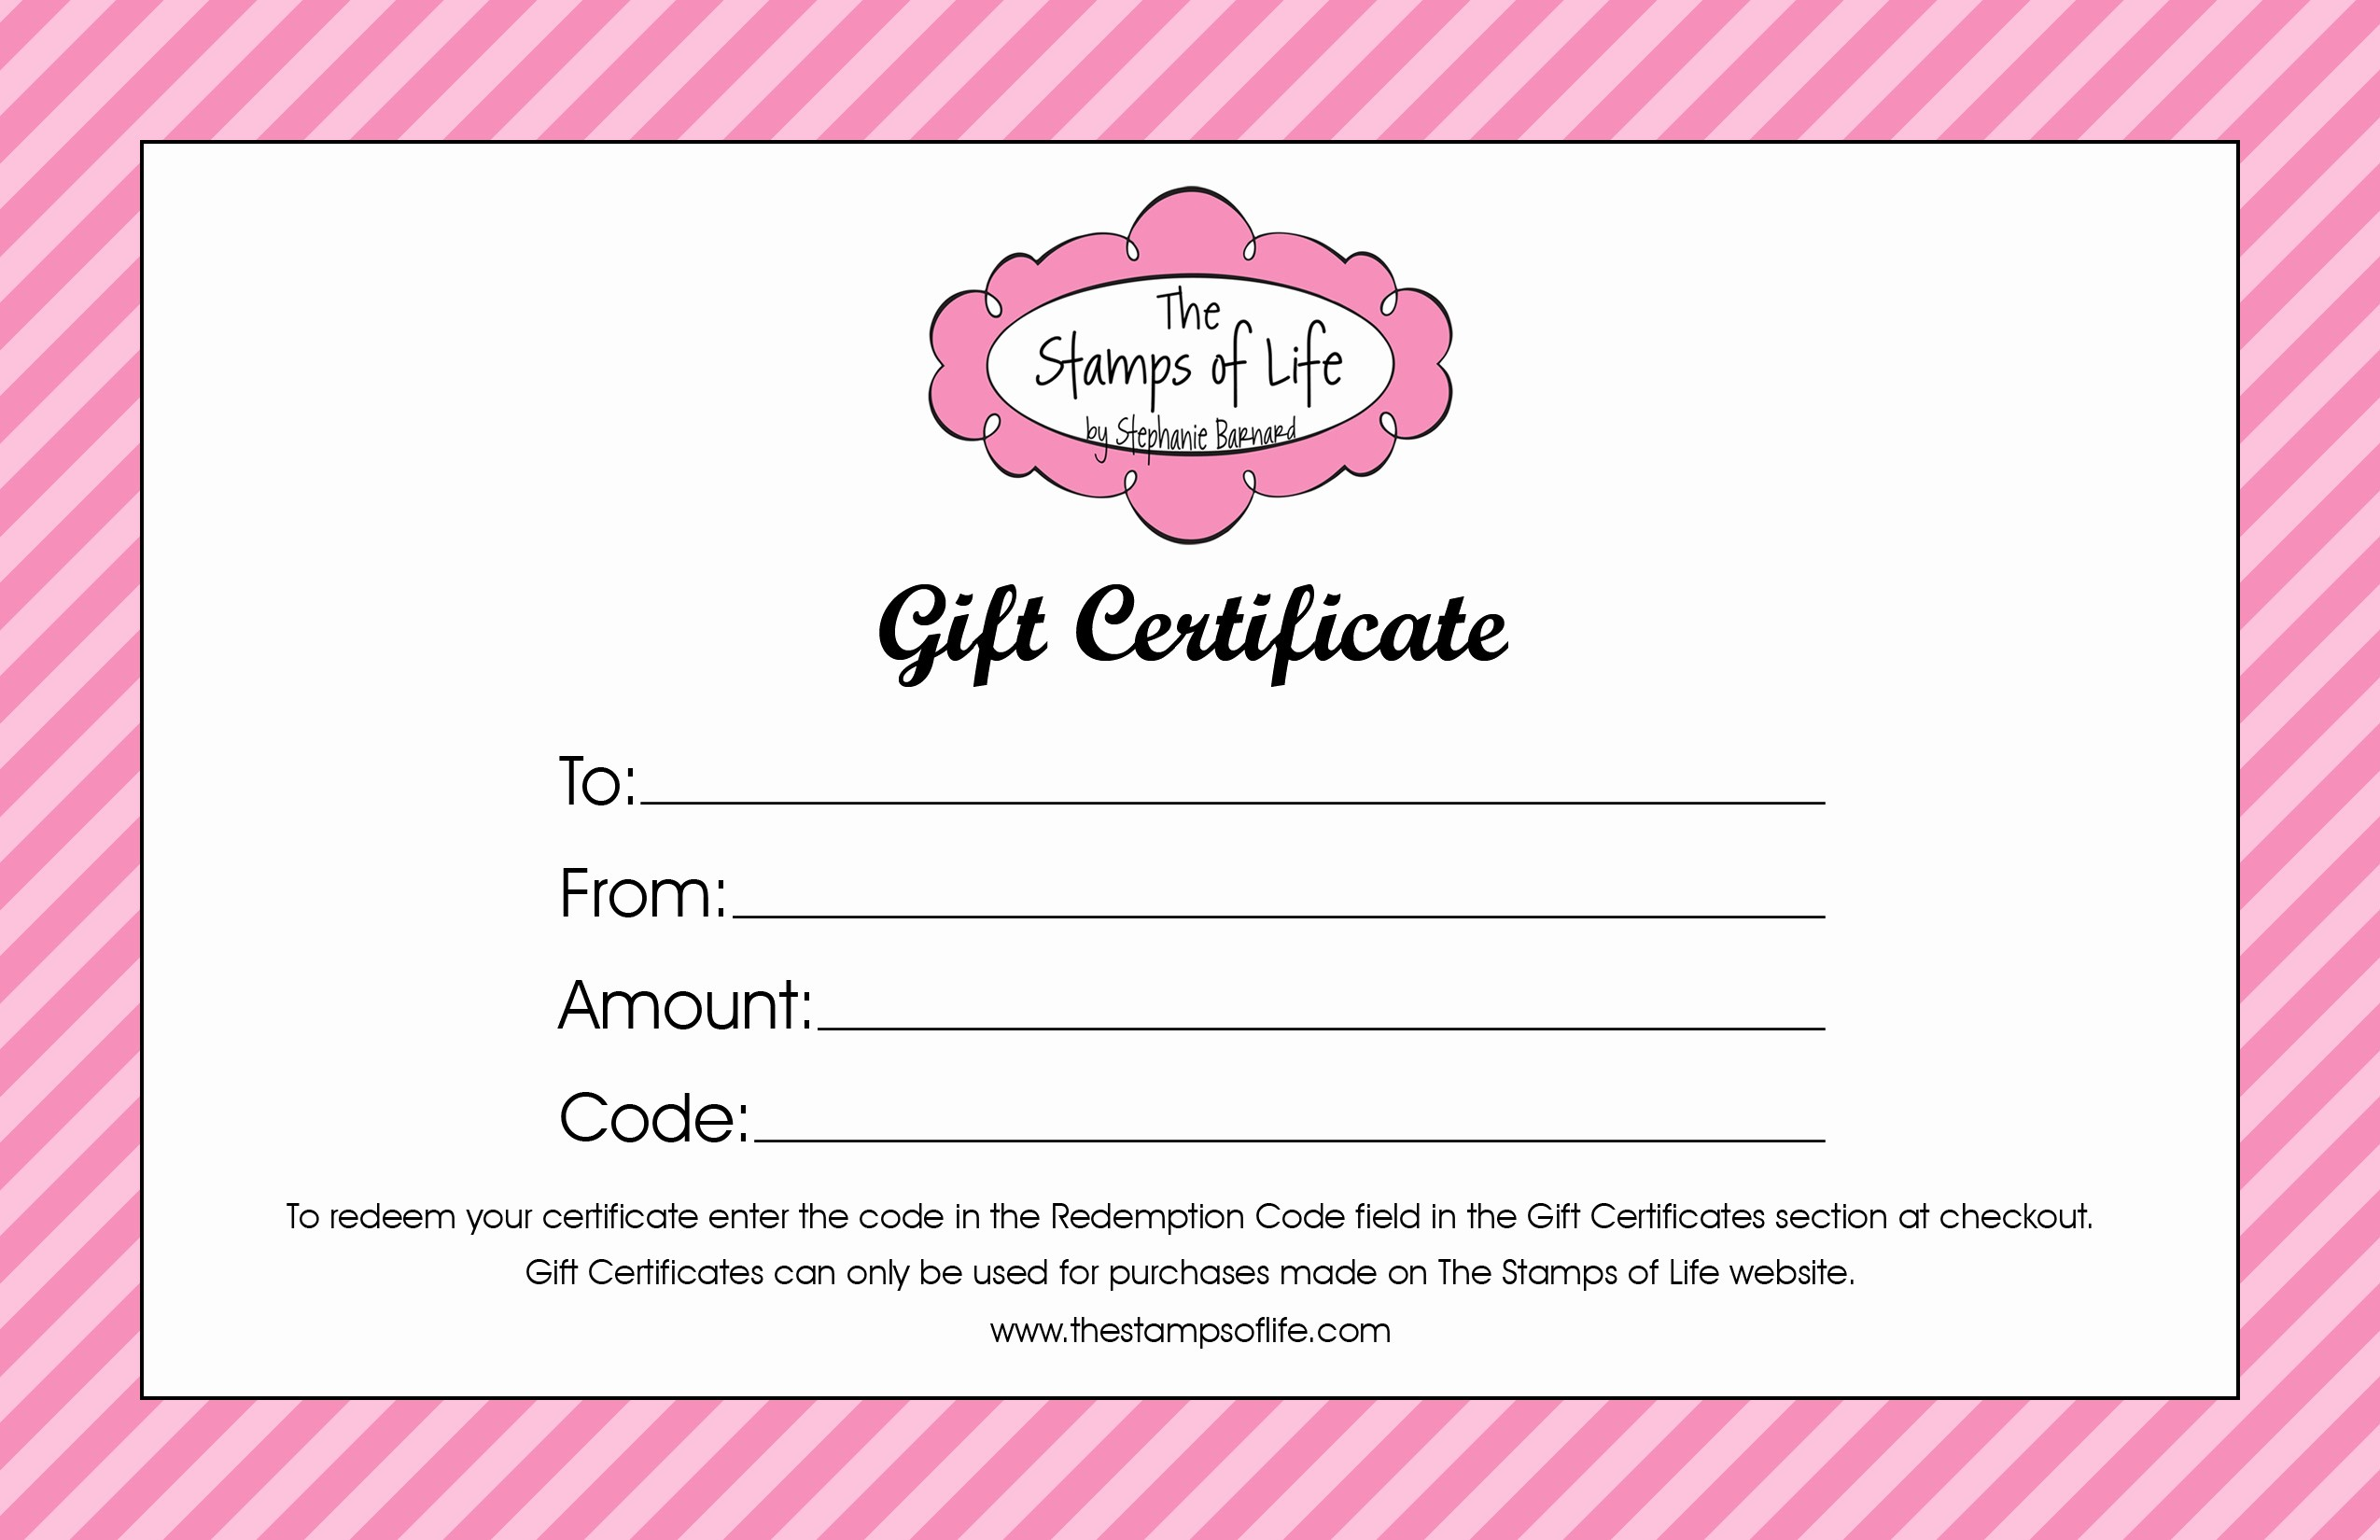 Certificate Design Templates Free Download Unique Gift Certificate Template Free Download Bamboodownunder